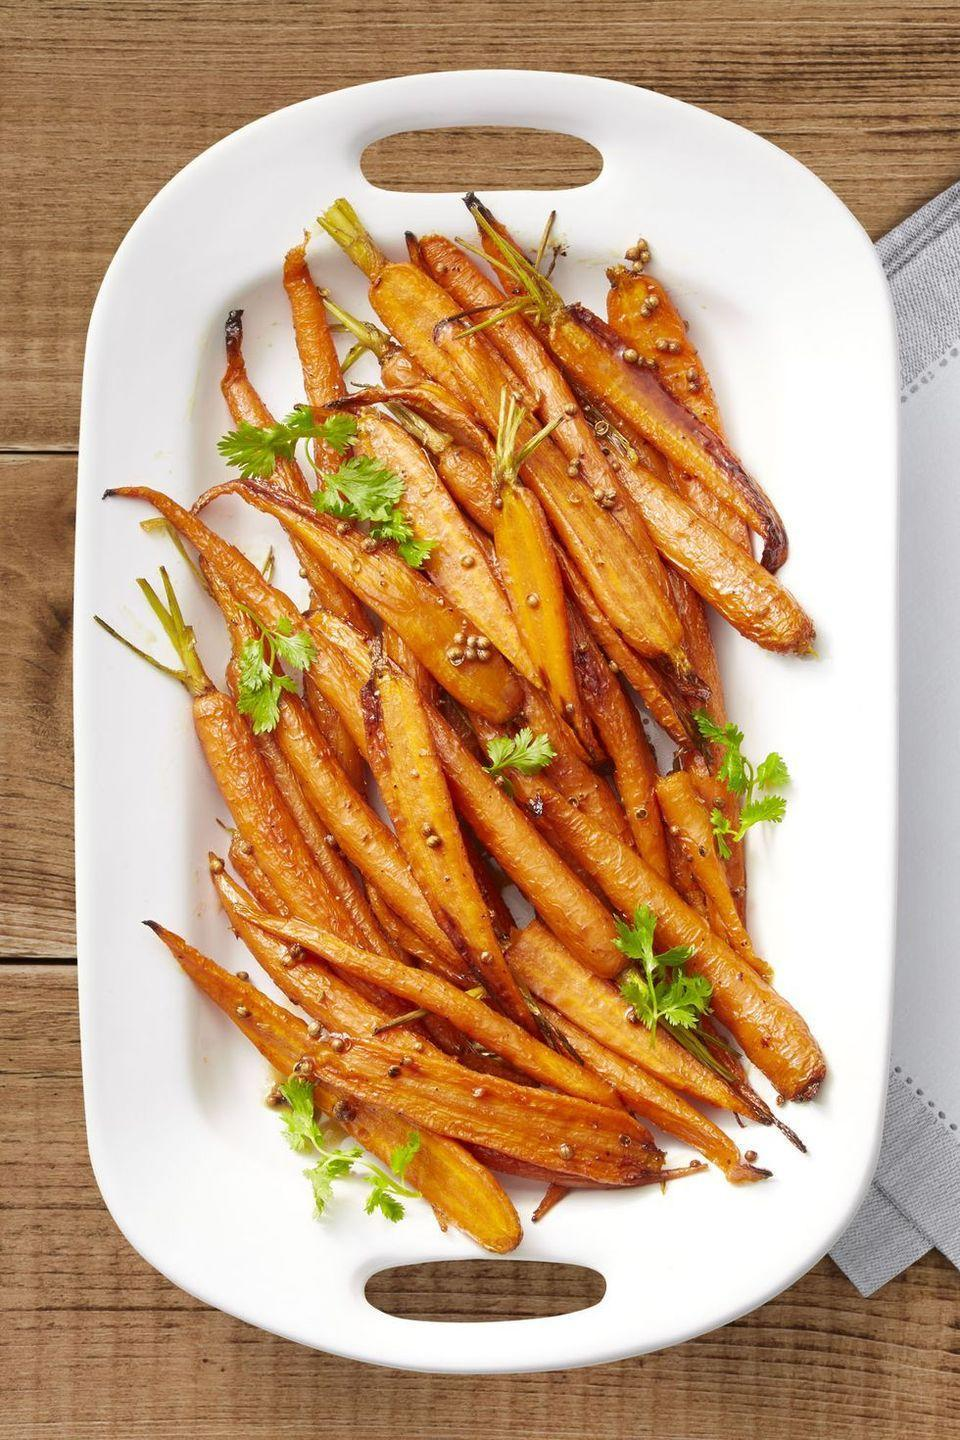 """<p>The sweet-and-savory combo of maple syrup and coriander seeds will even convert carrot-haters into craving this tasty recipe.</p><p><em><a href=""""https://www.womansday.com/food-recipes/food-drinks/a24115449/lemon-maple-roasted-carrots/"""" rel=""""nofollow noopener"""" target=""""_blank"""" data-ylk=""""slk:Get the recipe from Woman's Day »"""" class=""""link rapid-noclick-resp"""">Get the recipe from Woman's Day »</a></em><br></p>"""